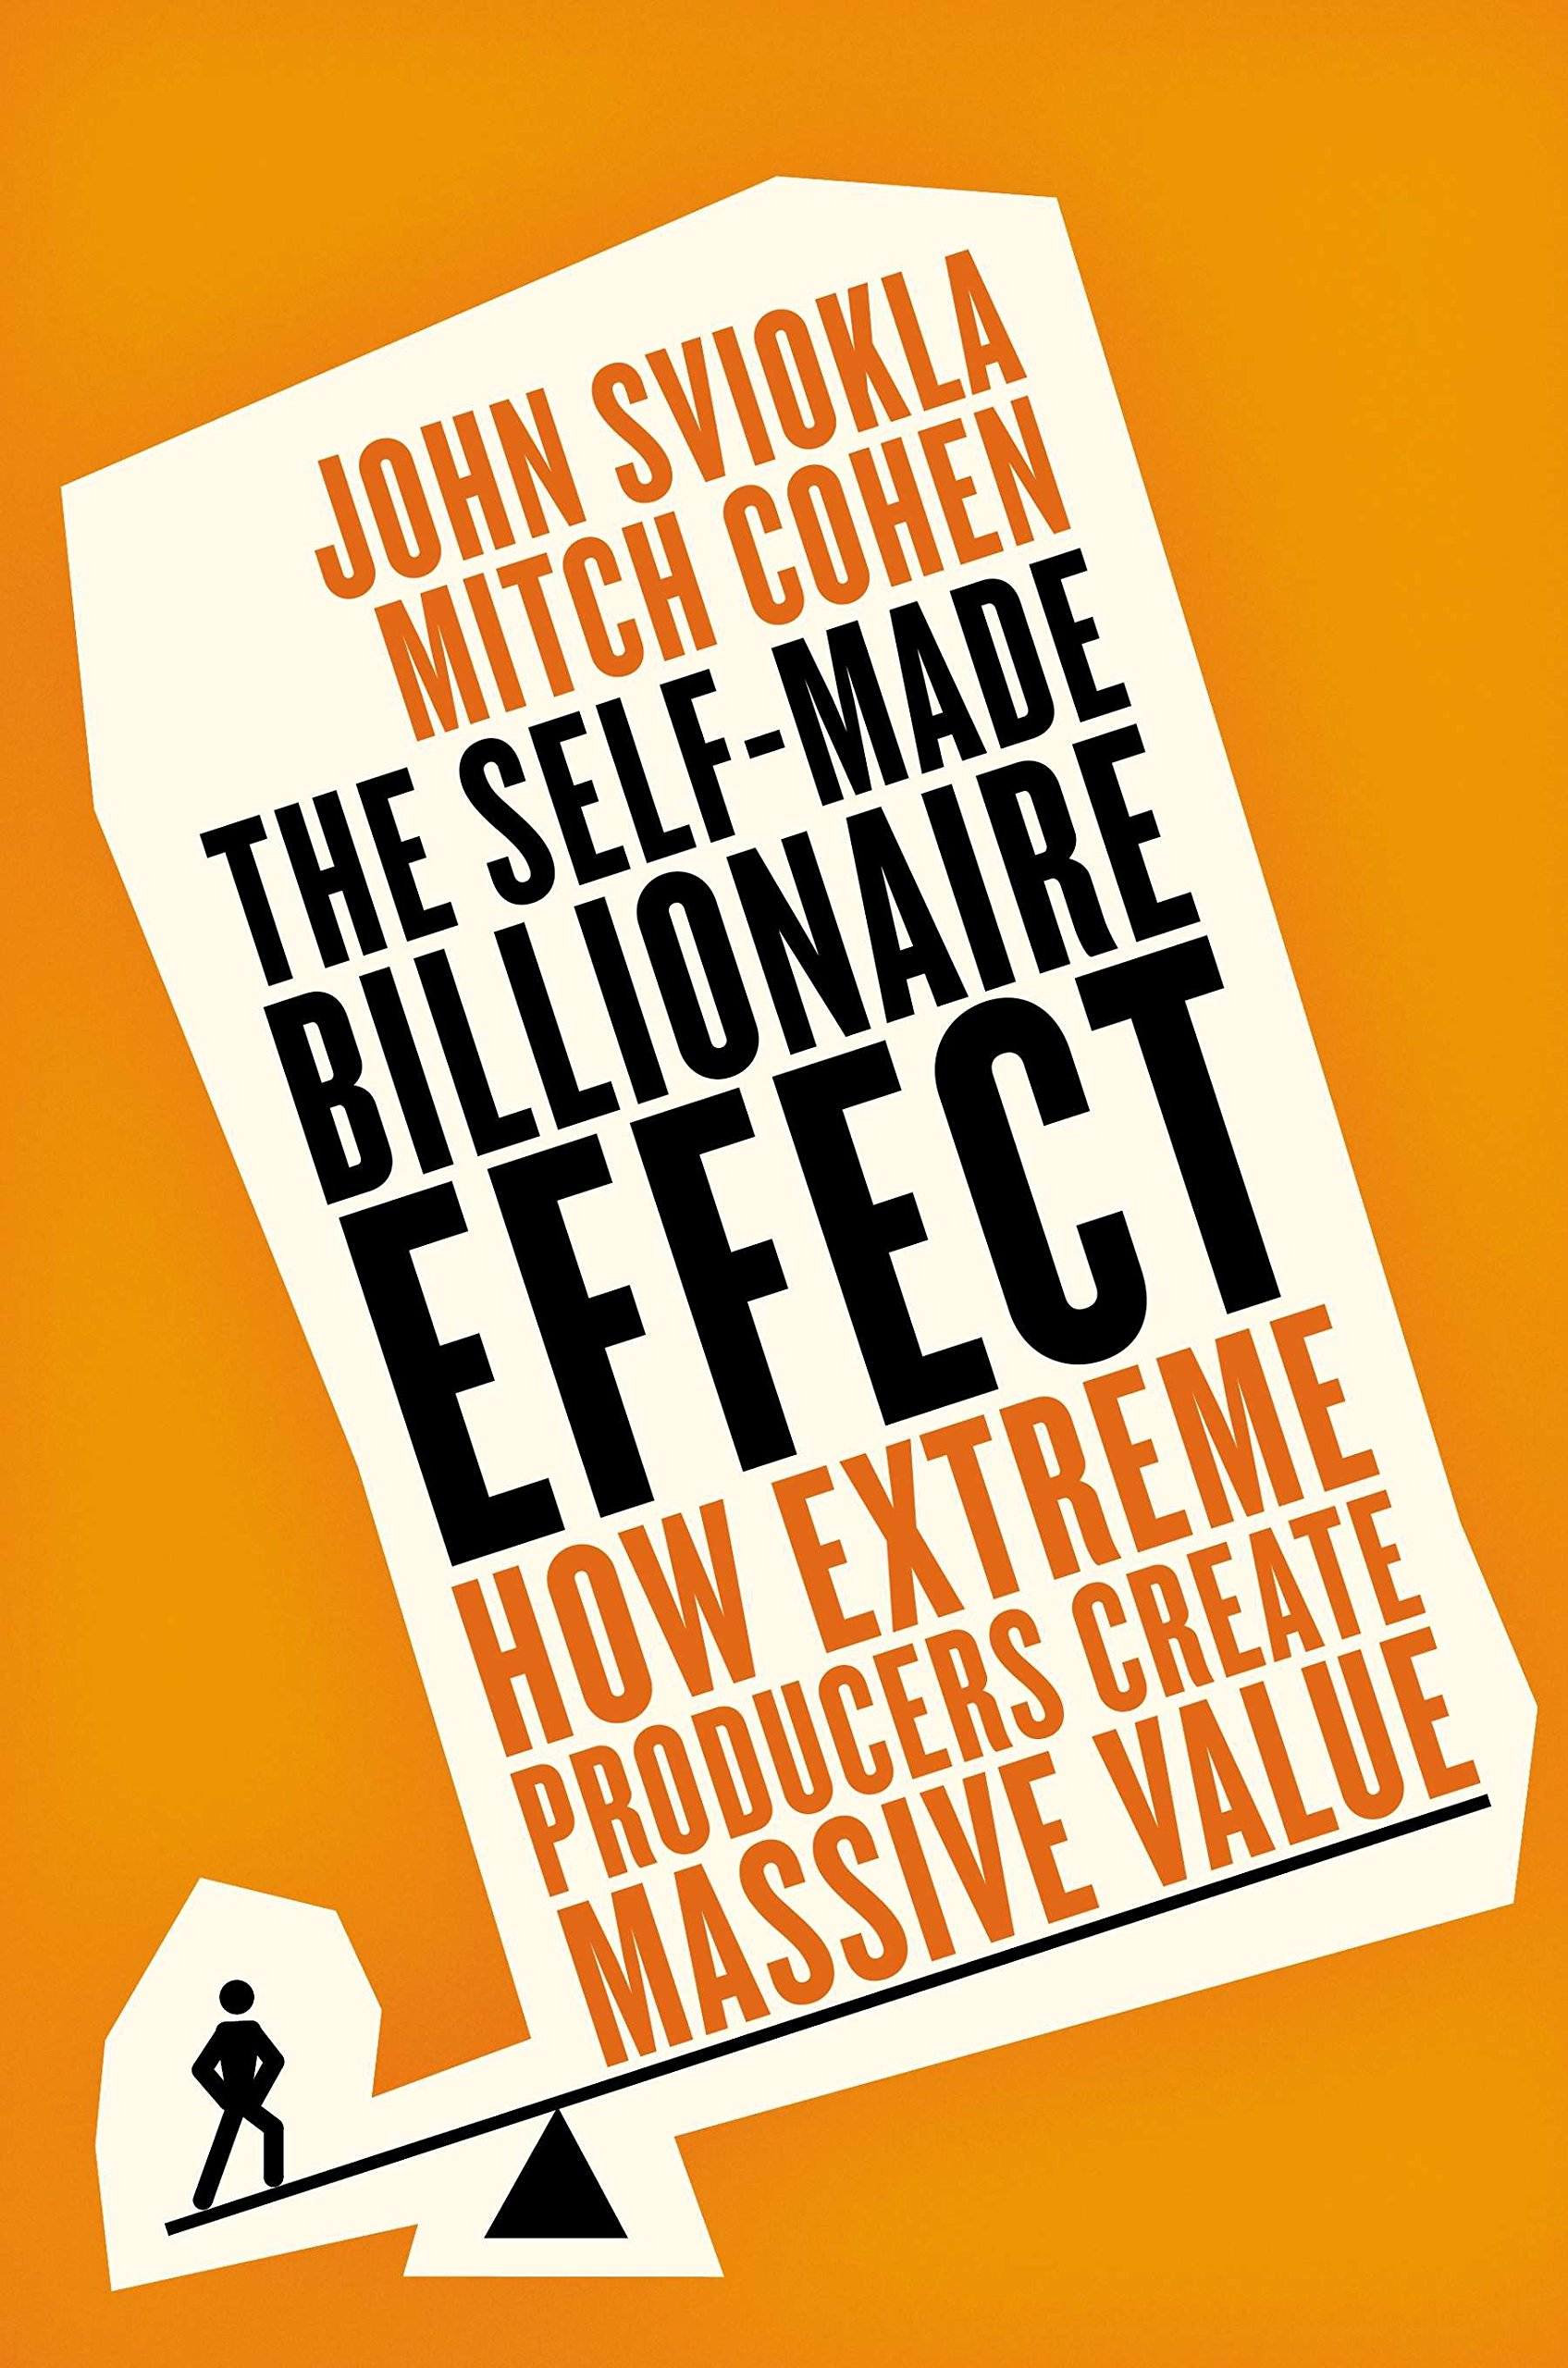 Download The Self-made Billionaire Effect: How Extreme Producers Create Massive Value PDF